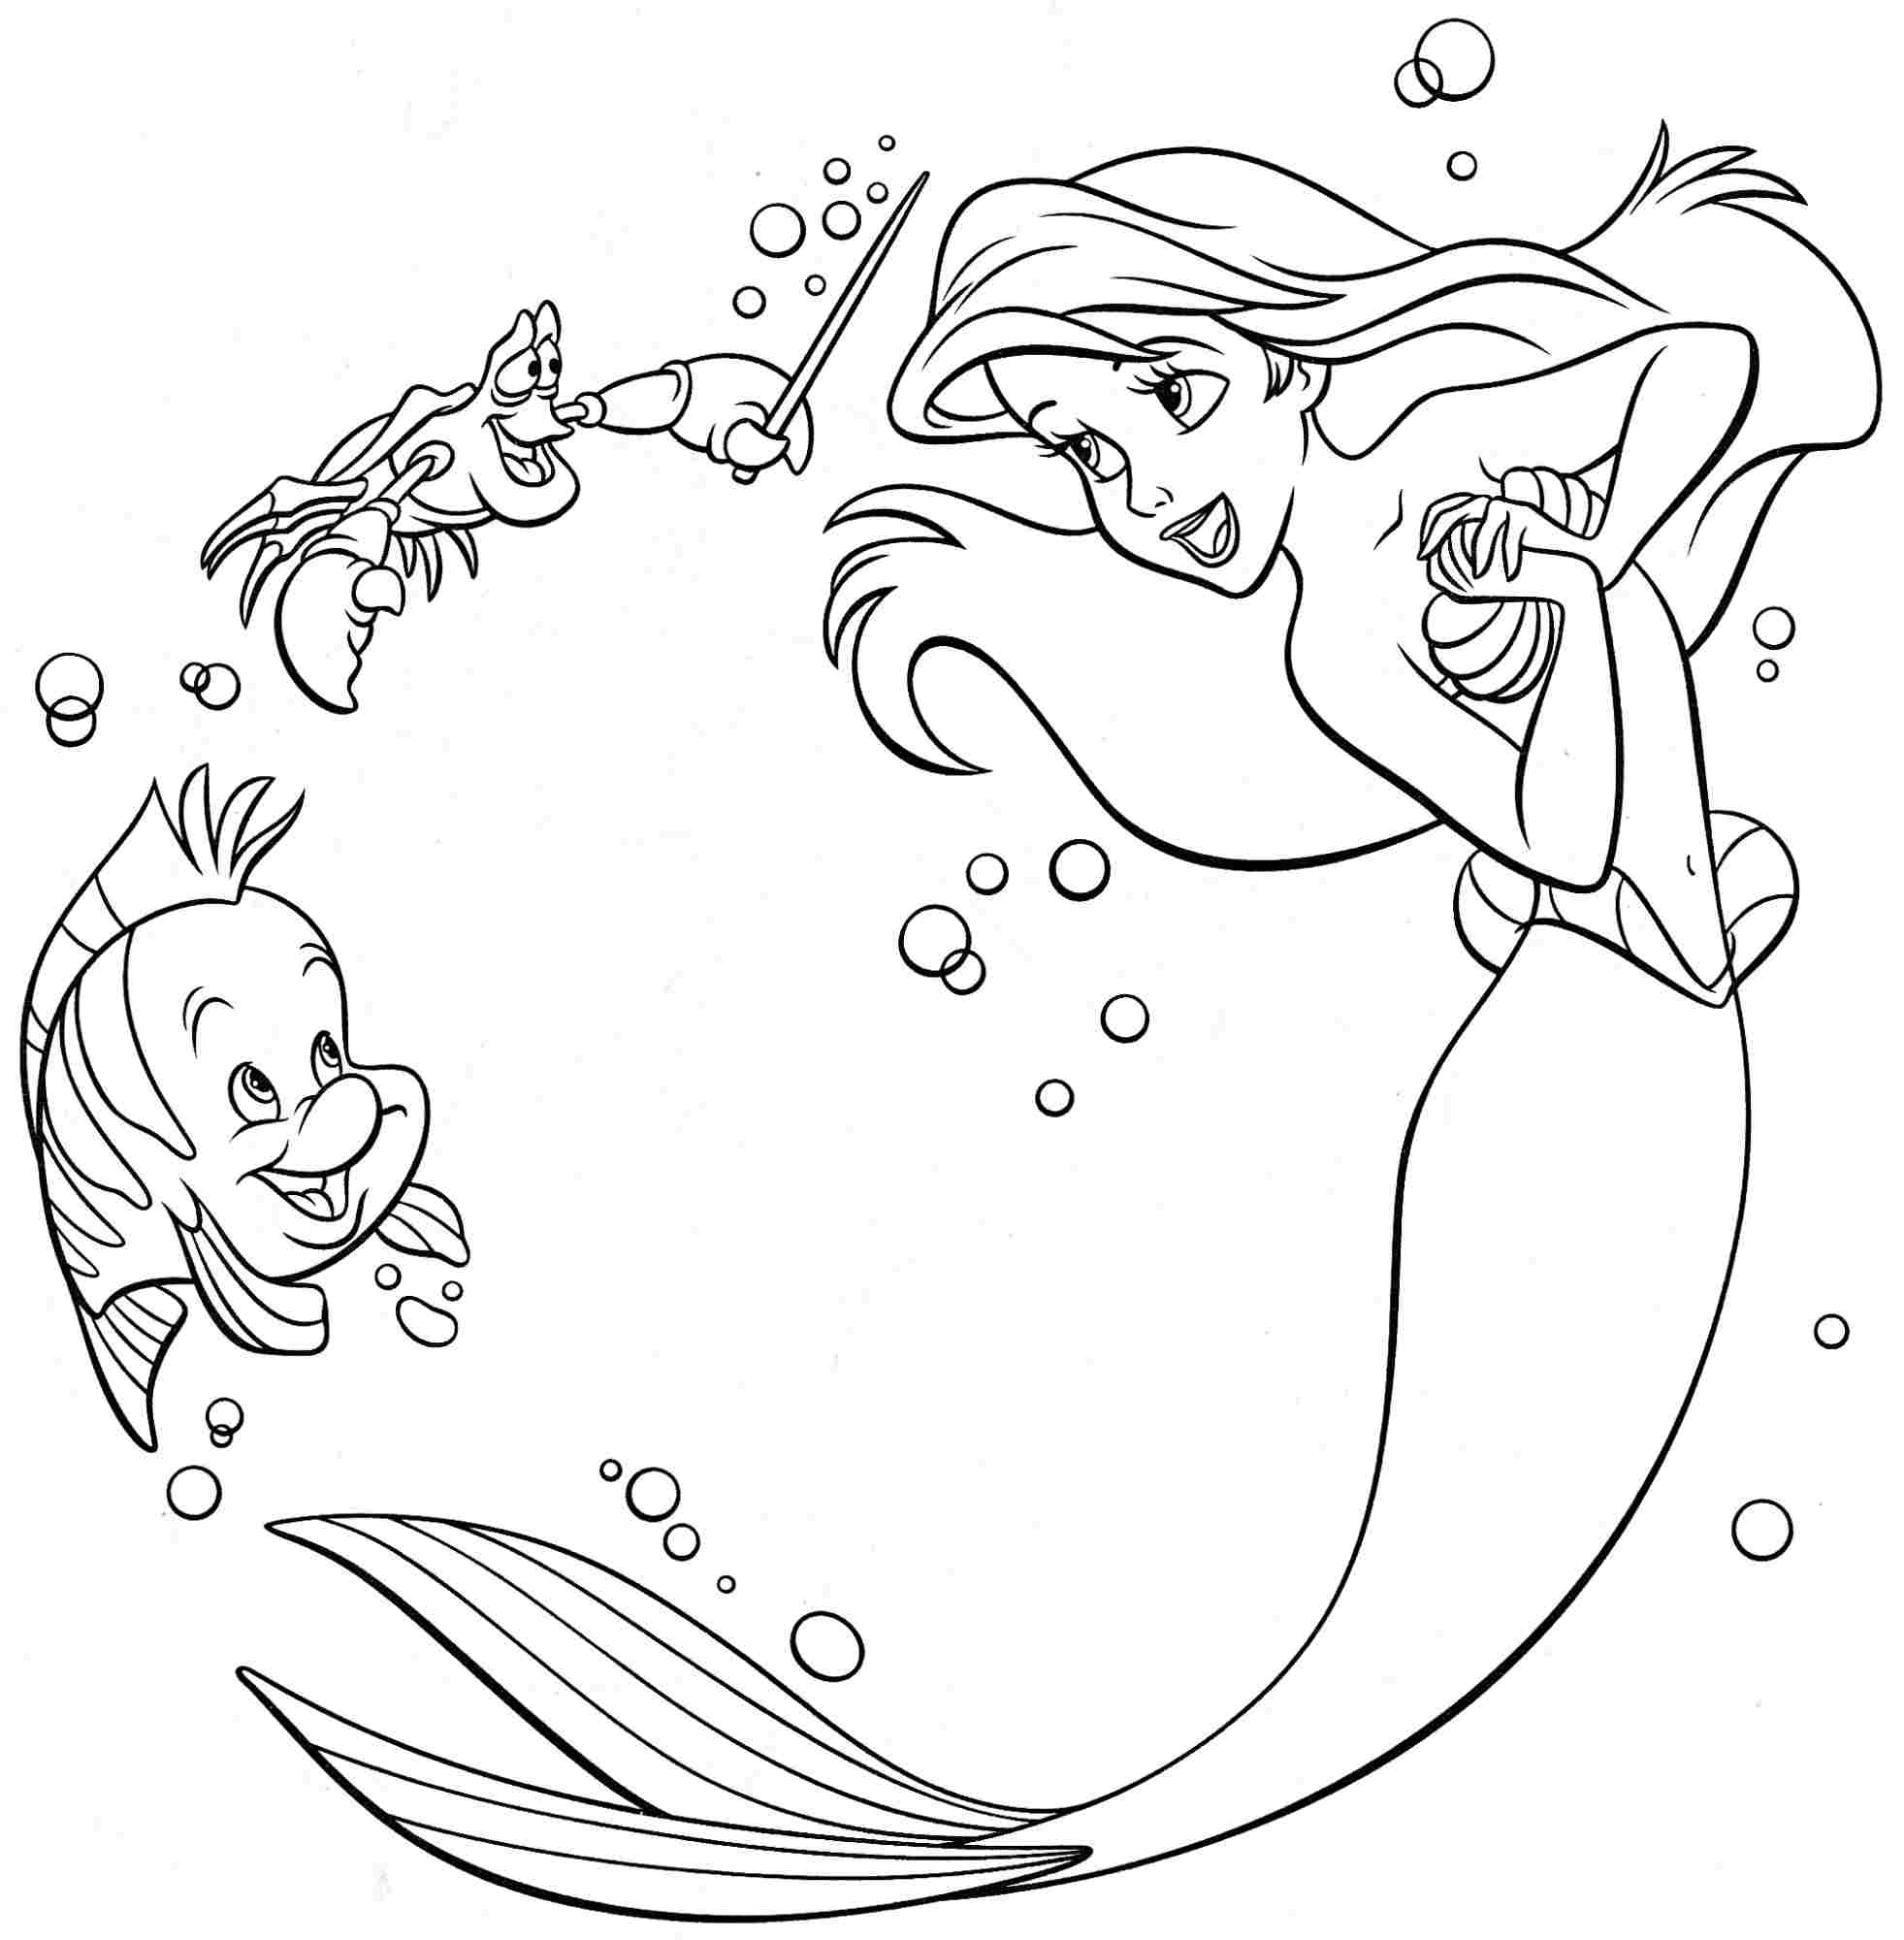 free mermaid coloring pages mermaid coloring page stock illustration download image mermaid free pages coloring